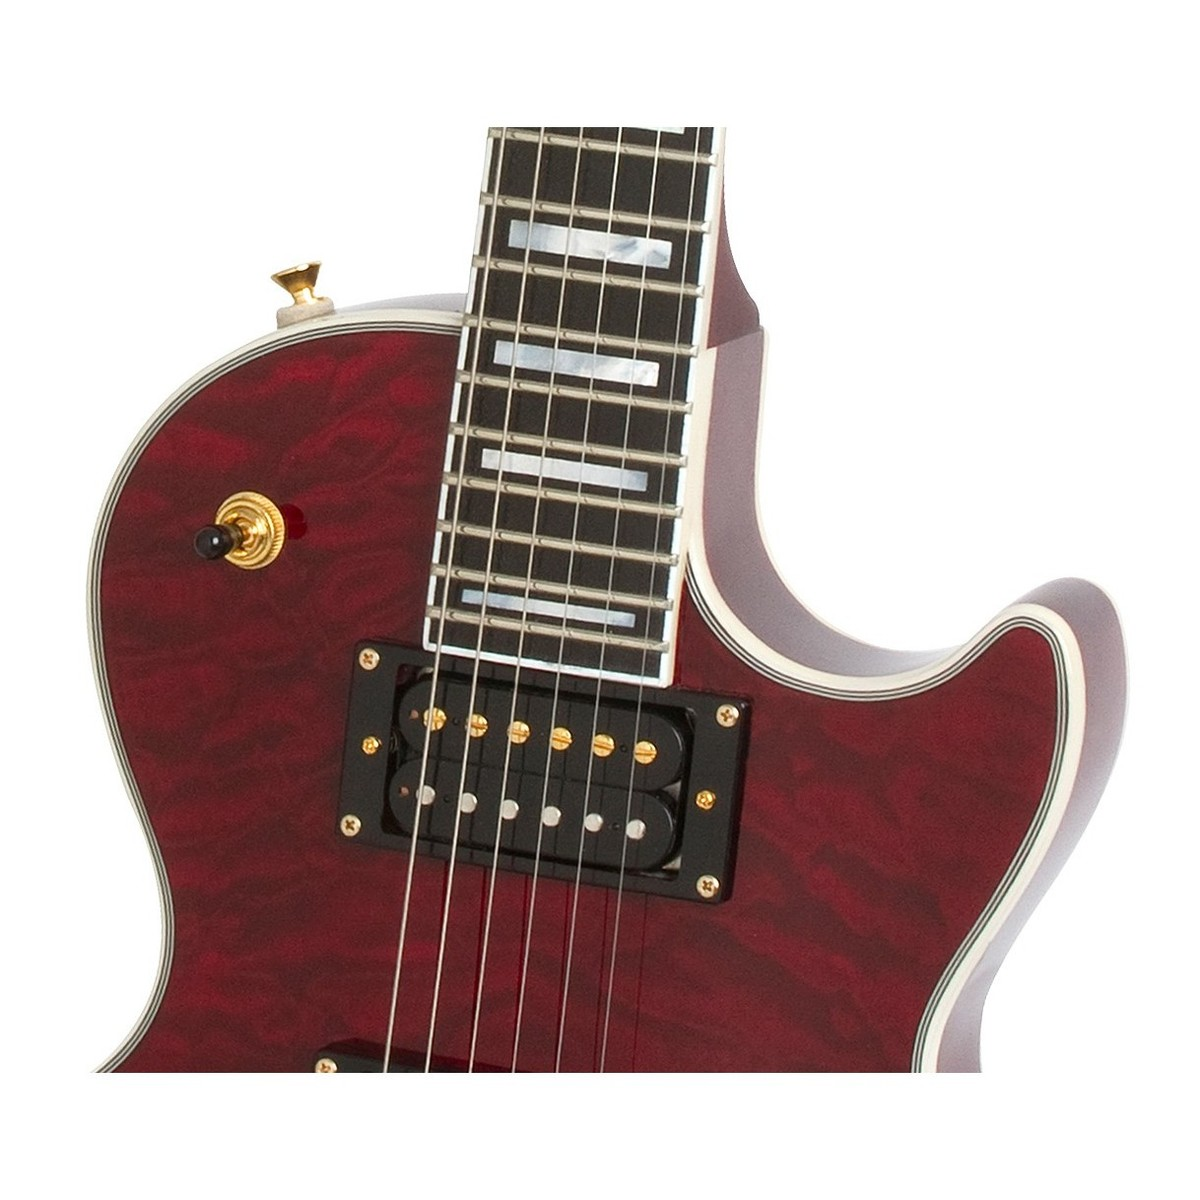 hight resolution of wiring diagram epiphone les paul prophecy ex wiring diagrams show wiring diagram epiphone les paul prophecy ex